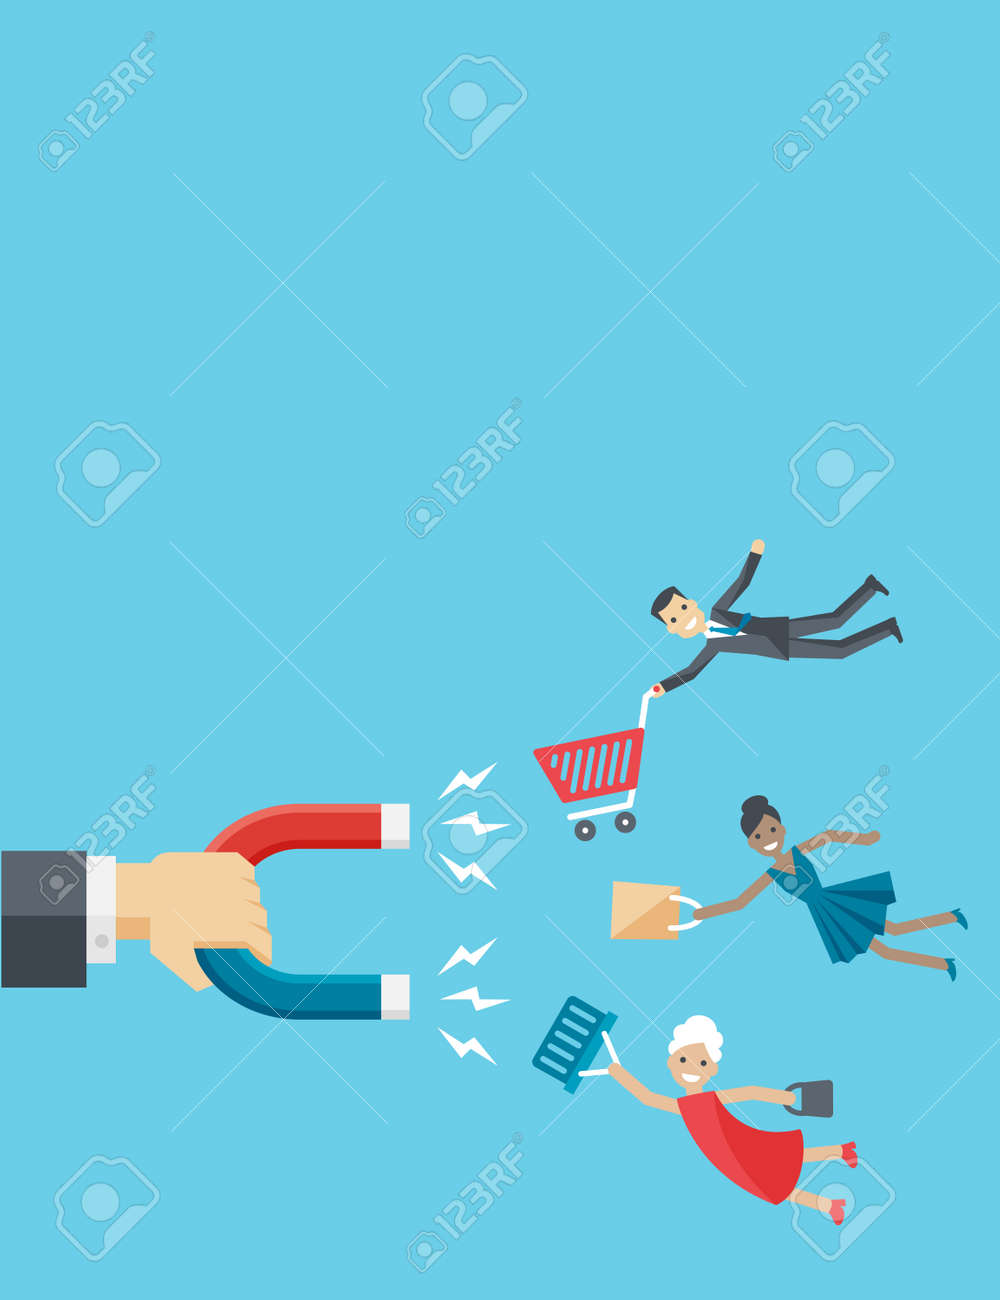 Vector illustration of business vertical background in flat style. The hand of businessman holds magnet attracting happy customers or clients like man, woman and senior. - 51621999